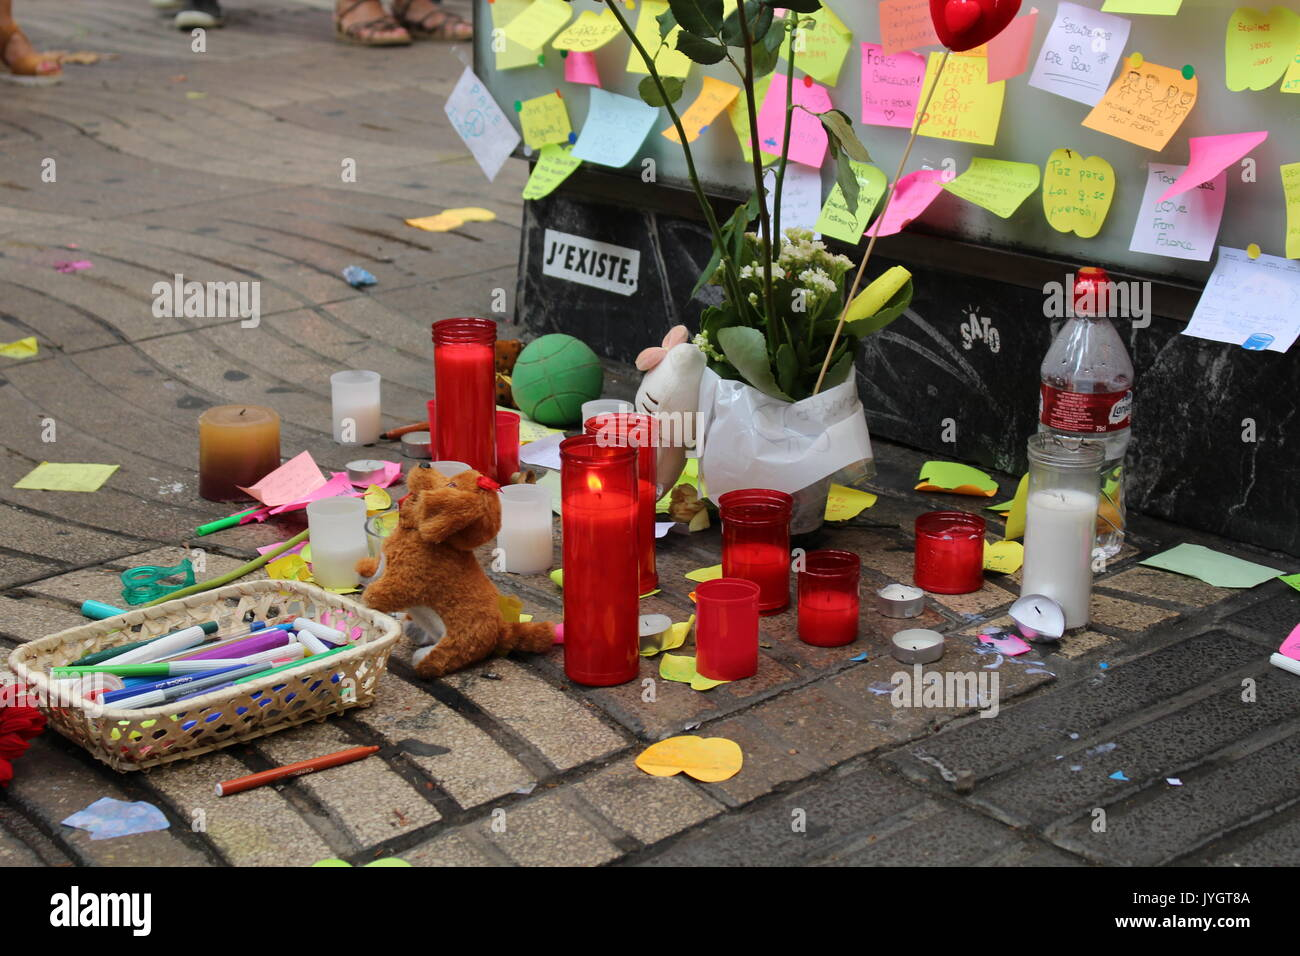 Barcelona, Spain. 19th August, 2017. Locals and tourists posting messages of condolence and burning candles for the victims of the terroristic attack on Ramblas Credit: Dino Geromella/Alamy Live News Credit: Dino Geromella/Alamy Live News - Stock Image